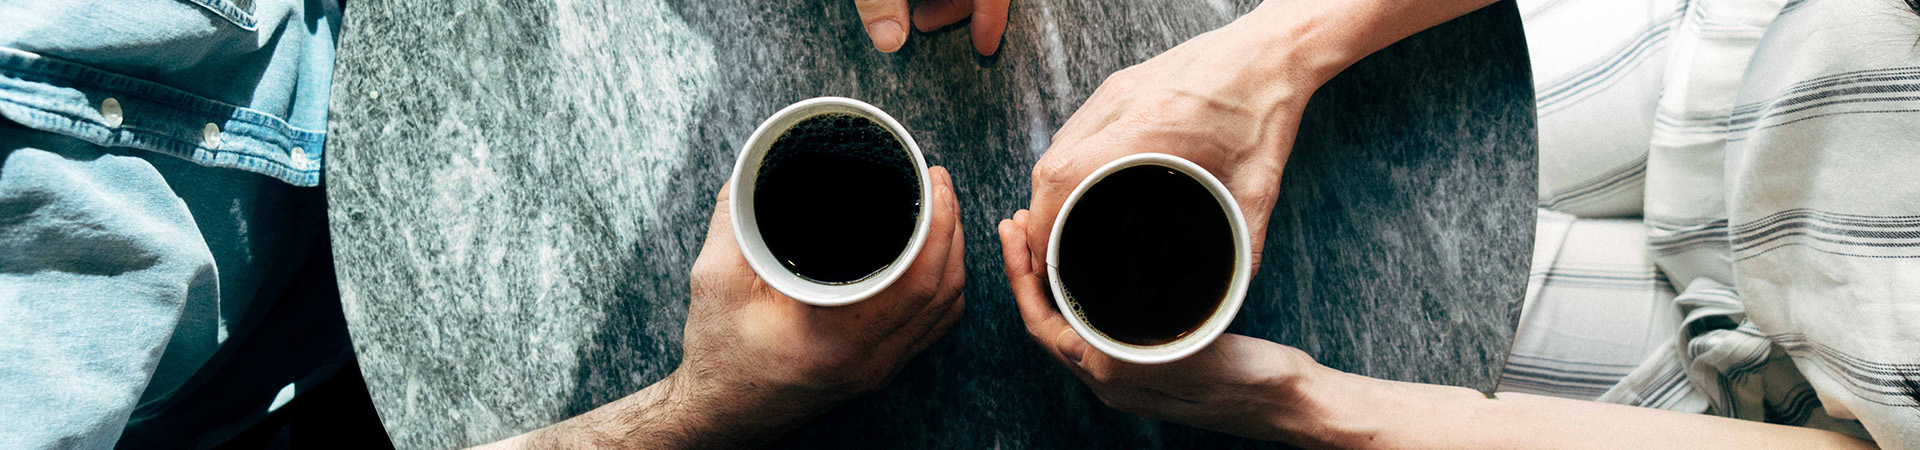 adults-talking-over-coffee